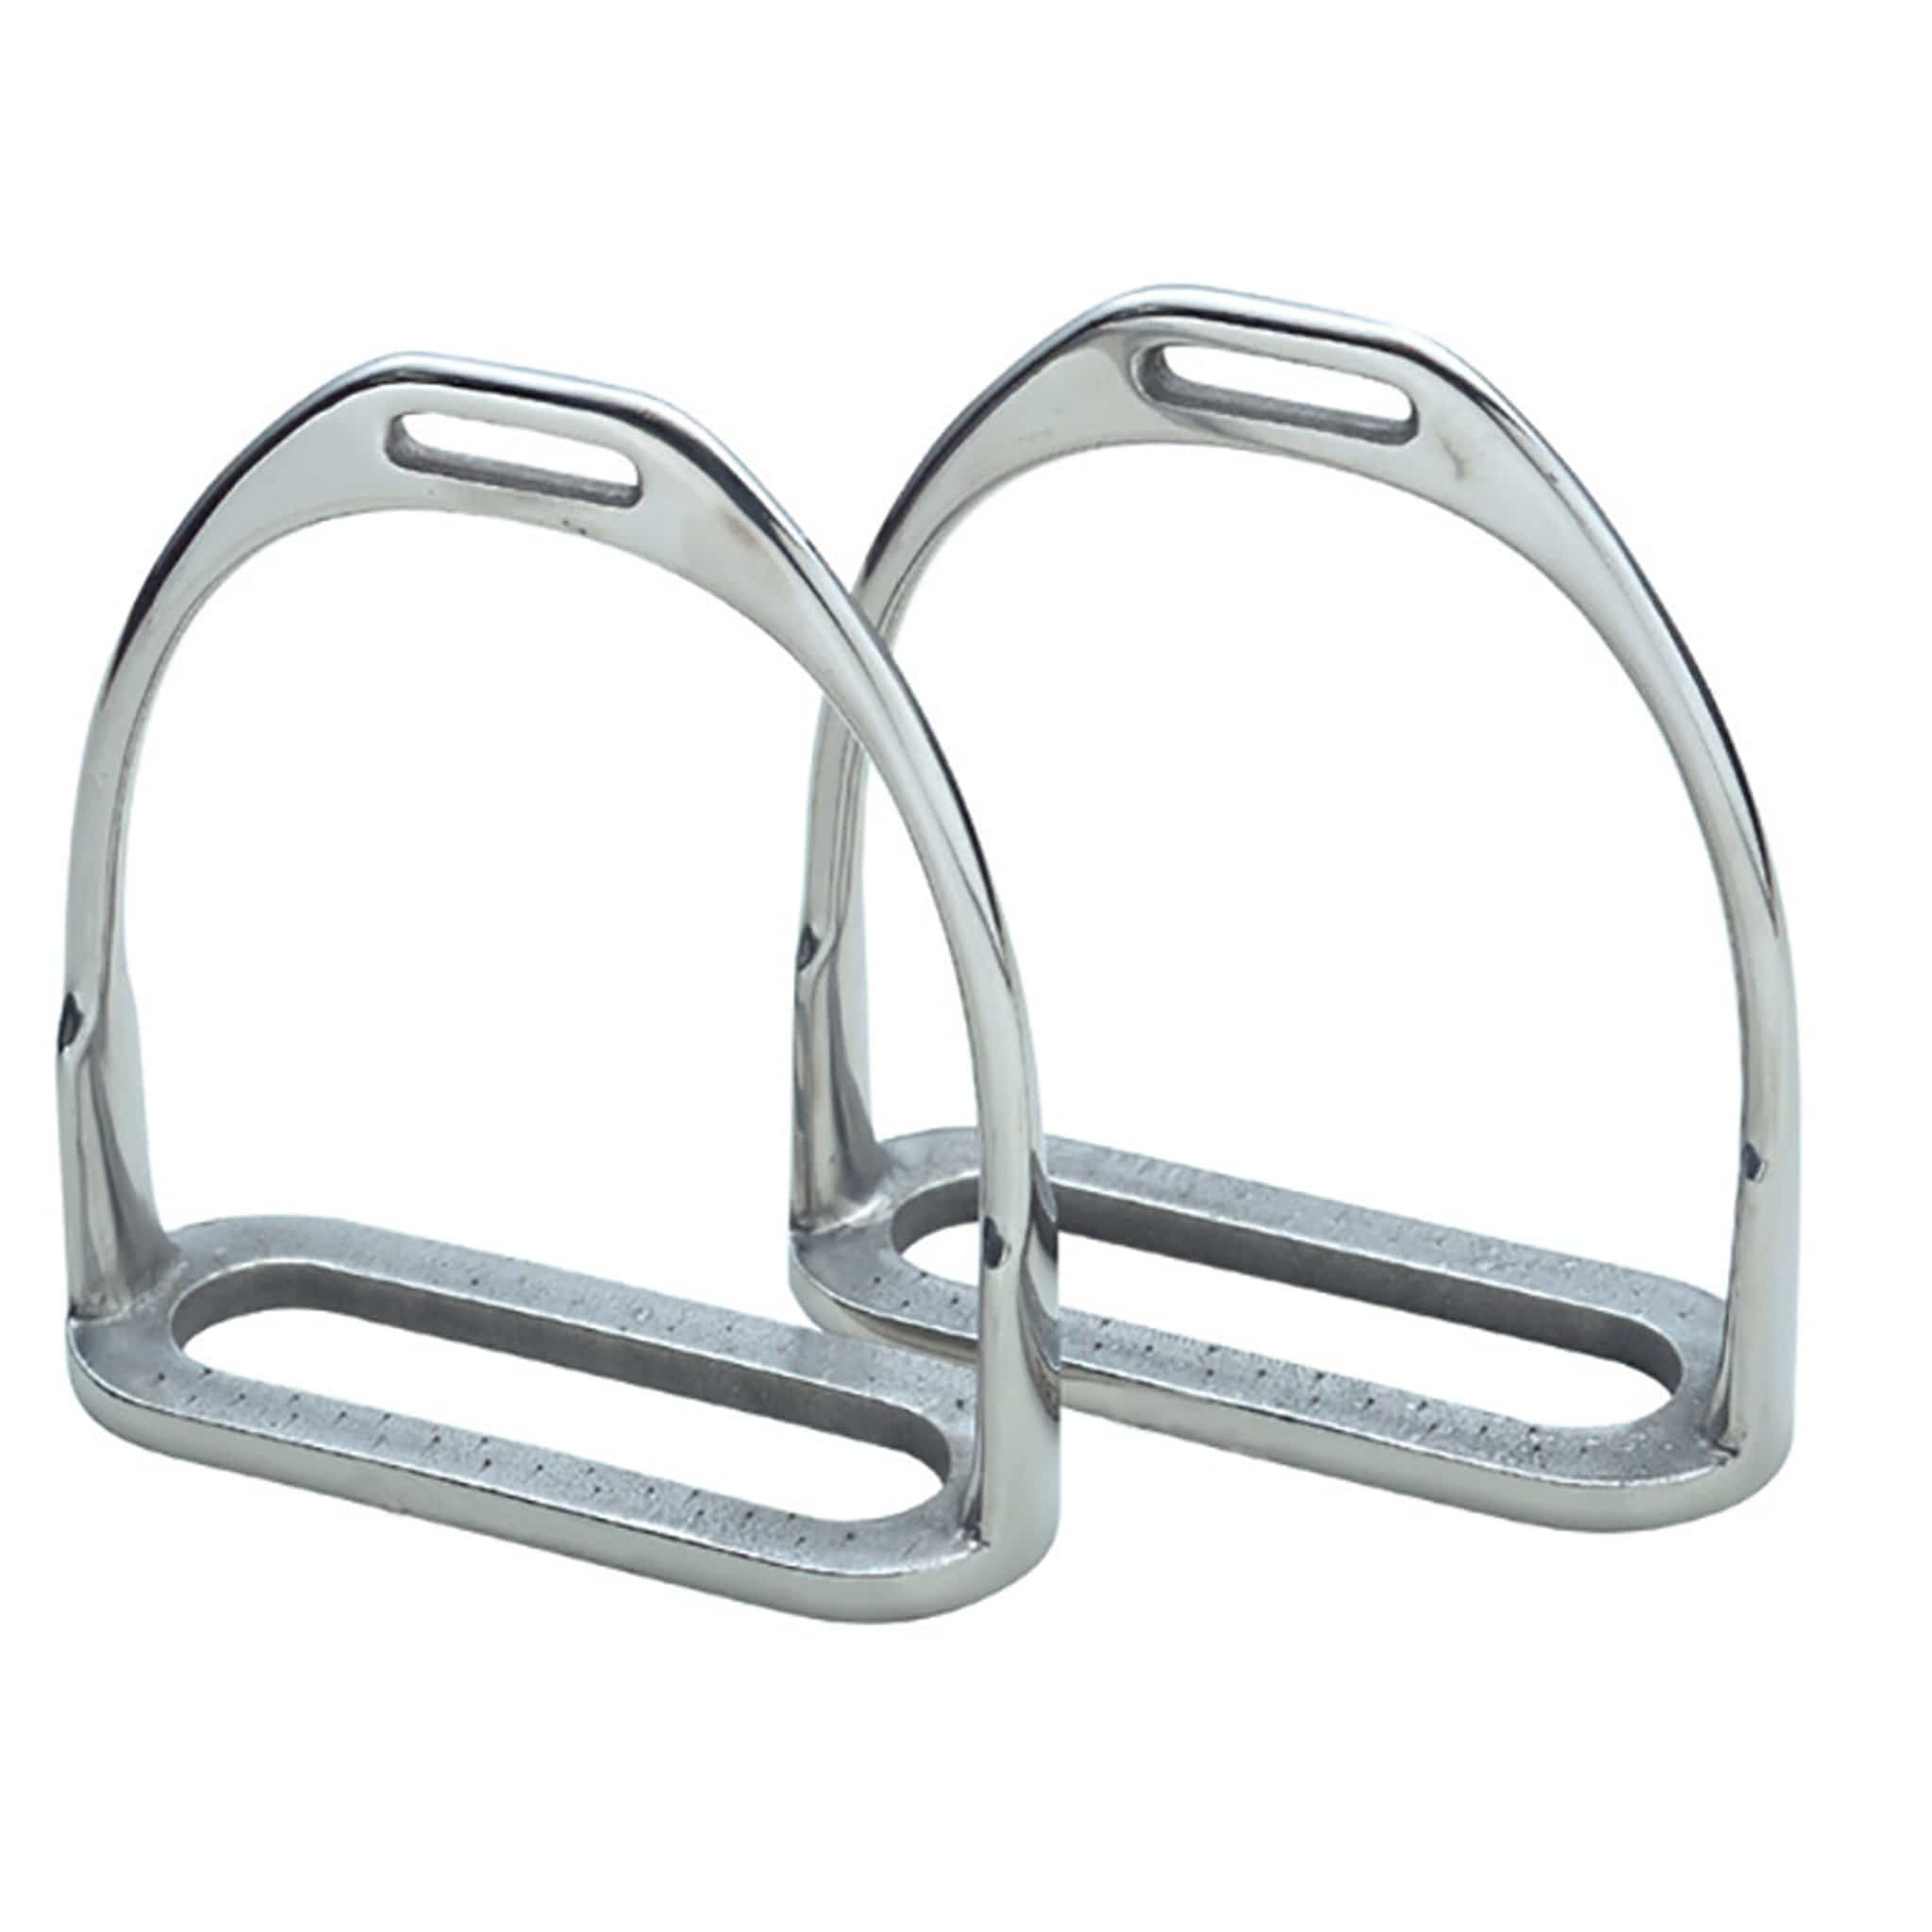 Shires Prussia Stirrup Irons 671CS